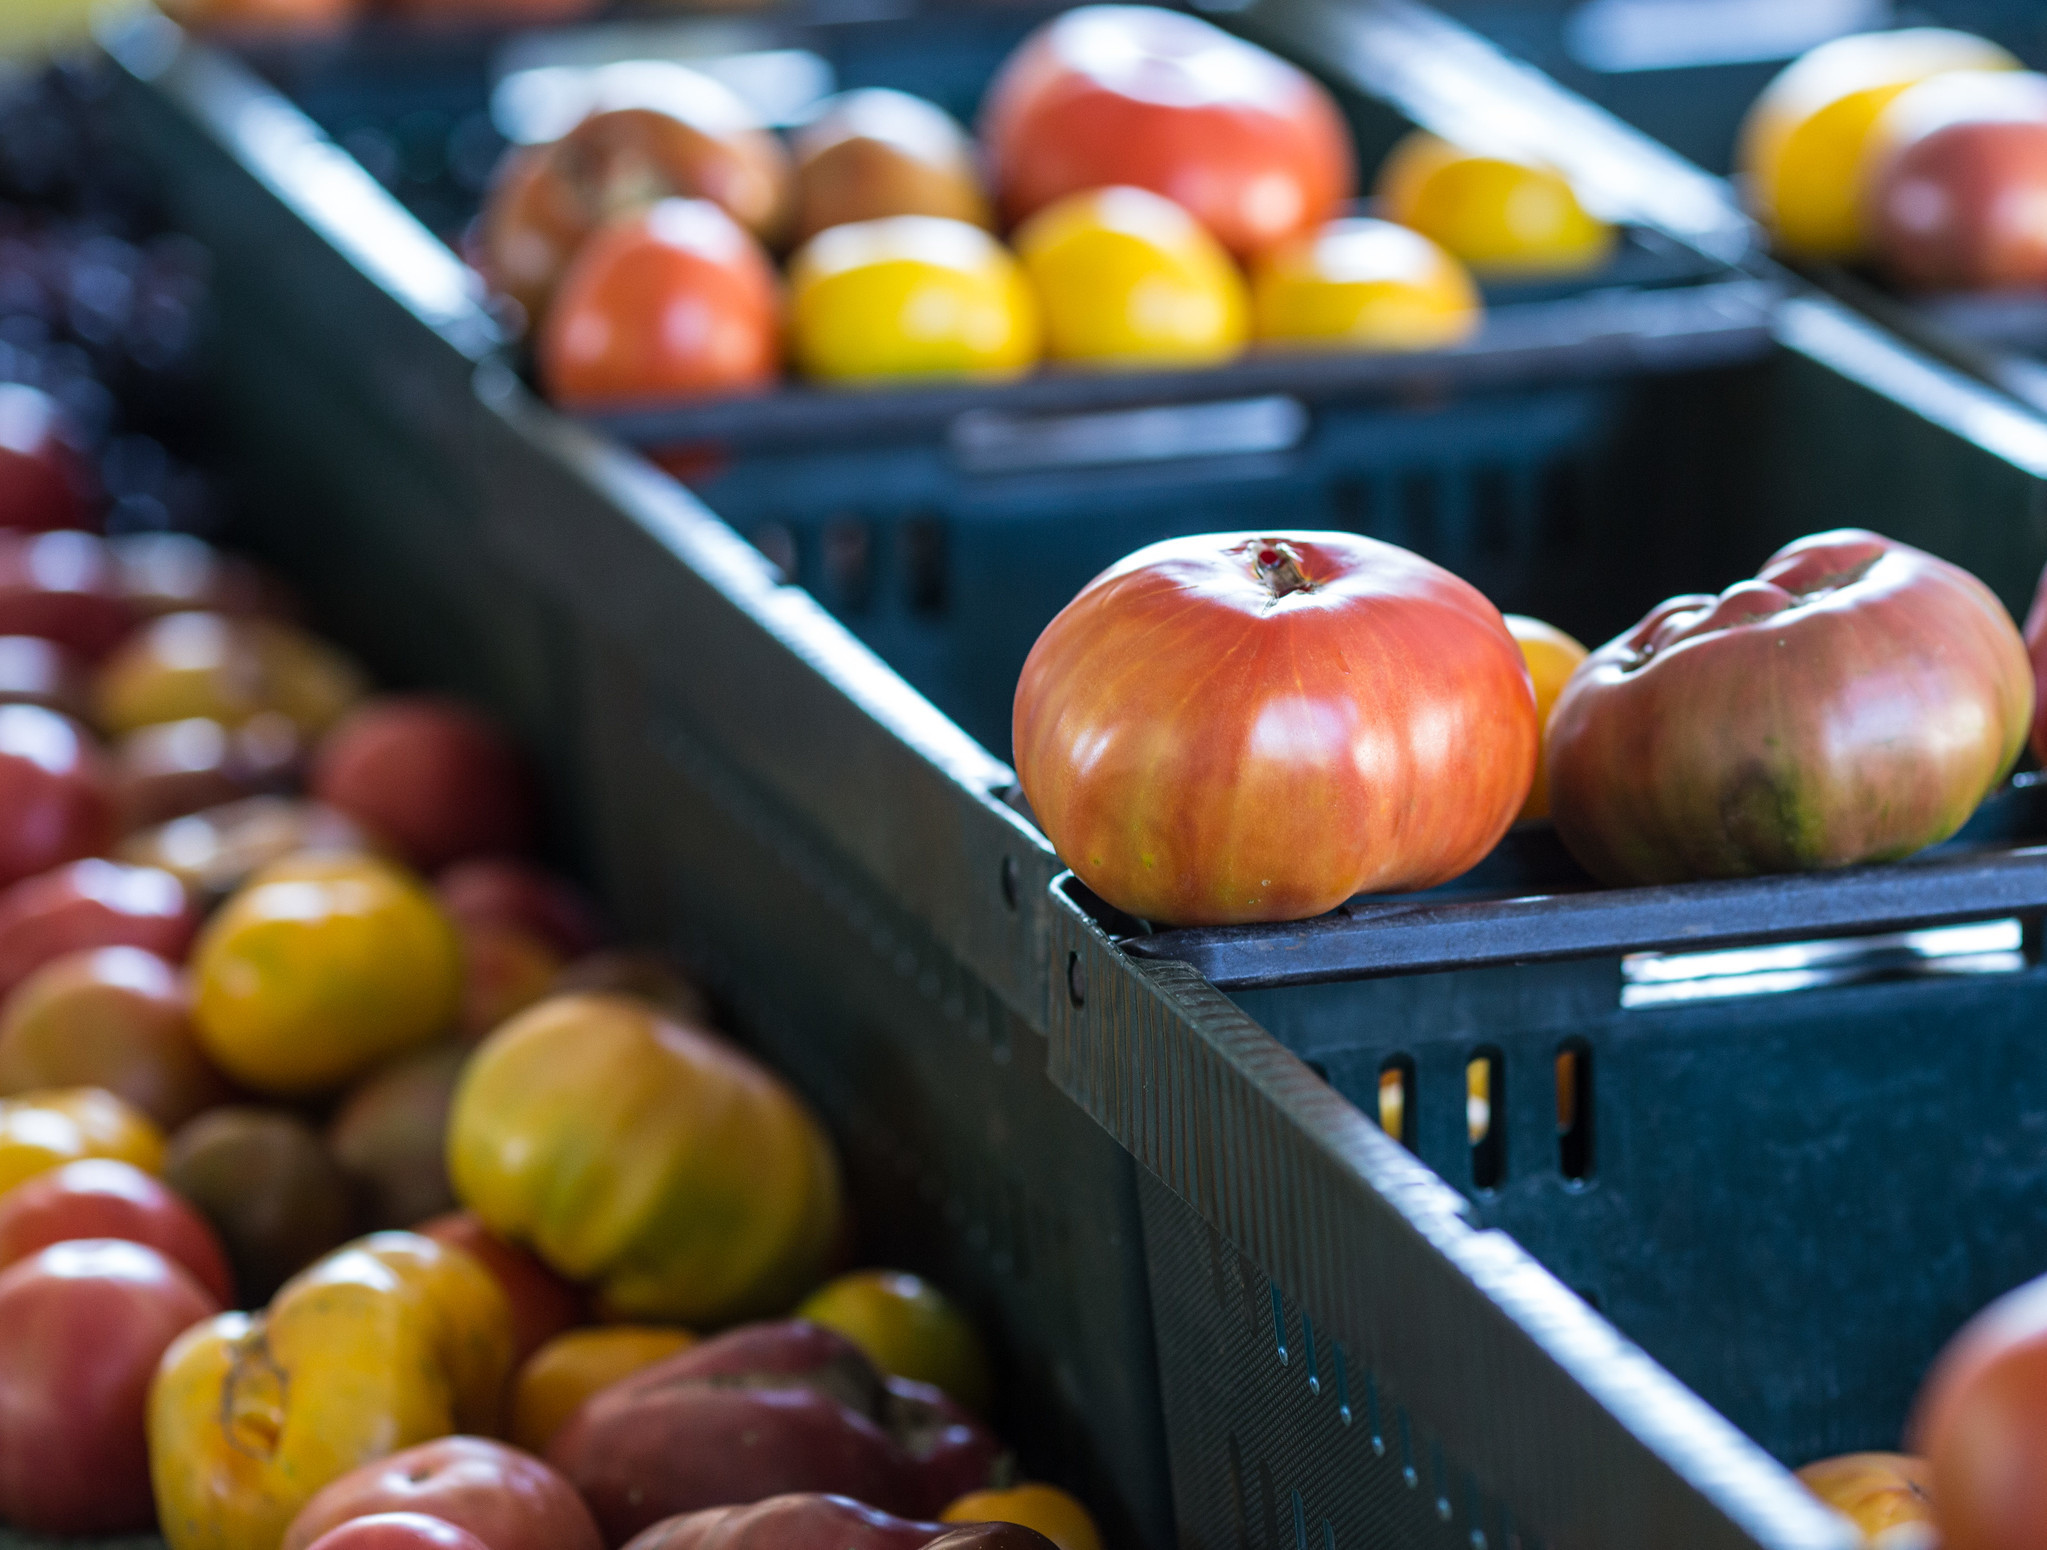 Tomatoes in crates at a farmers market